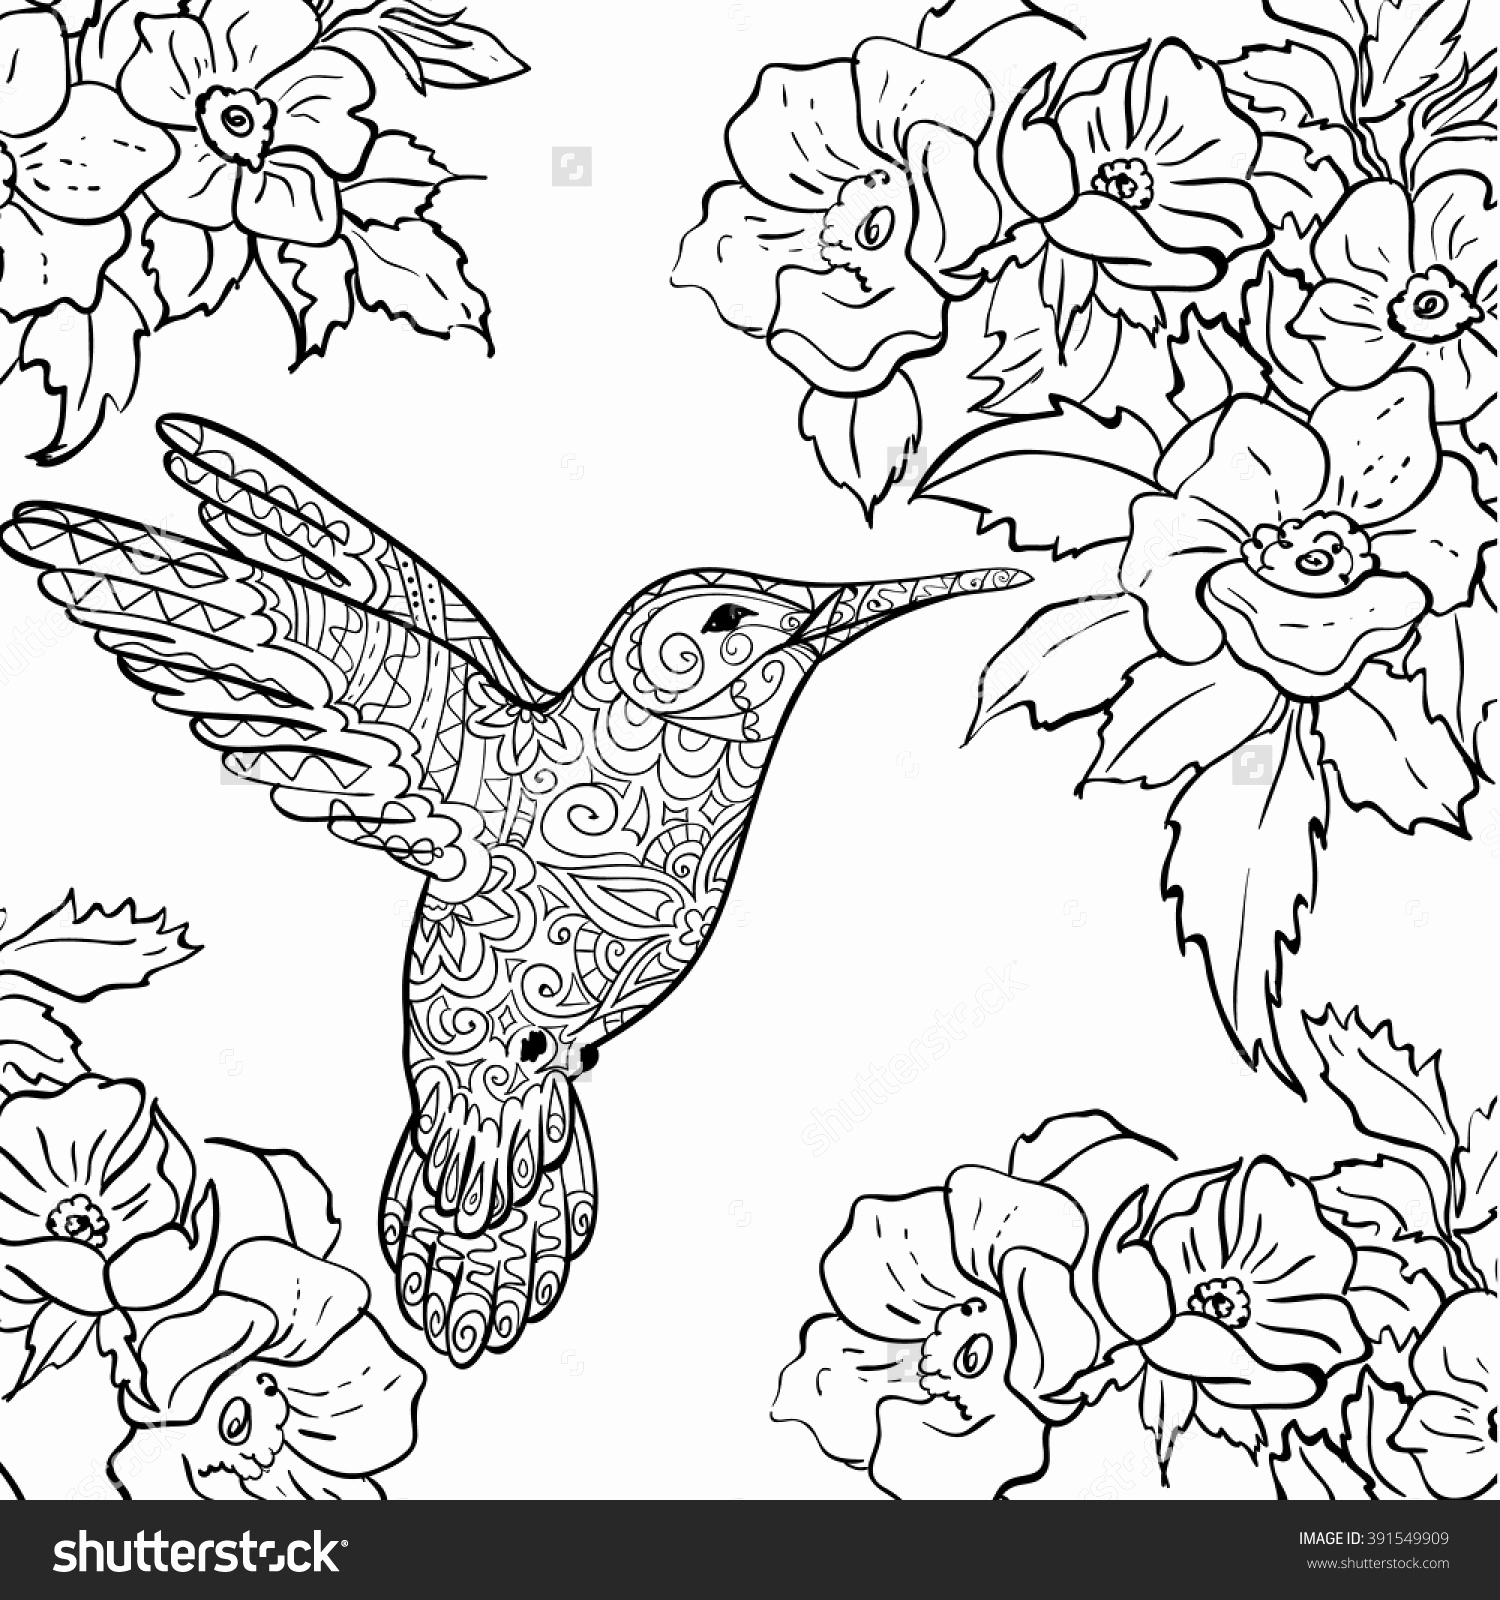 1500x1600 For Adult Coloring Pages Humming Birds